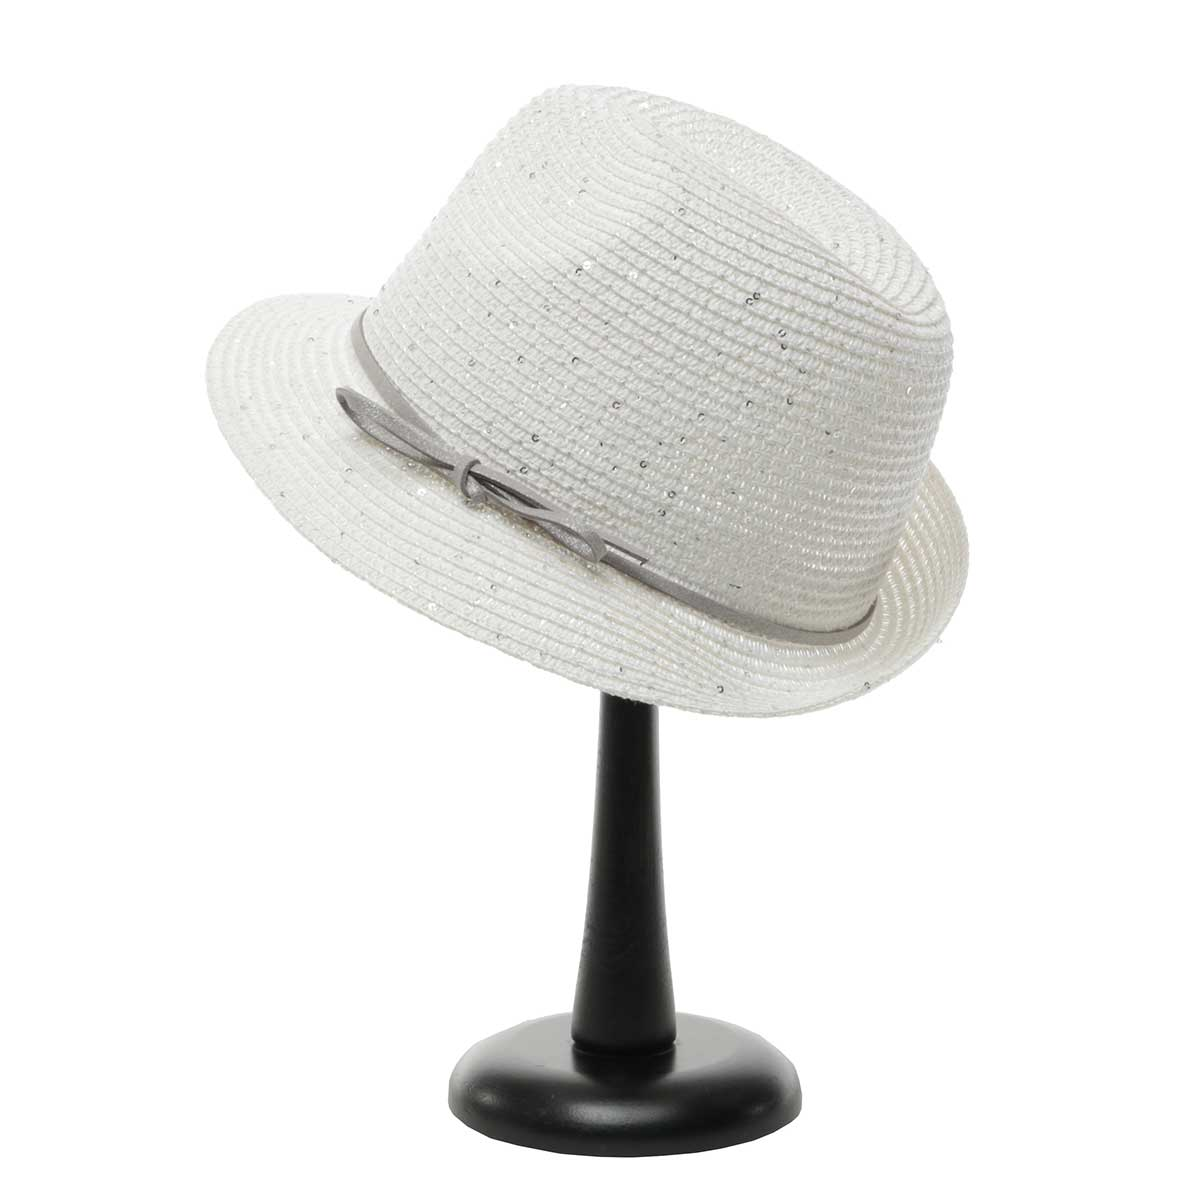 White Sparkle Derby Hat with Bow Trim